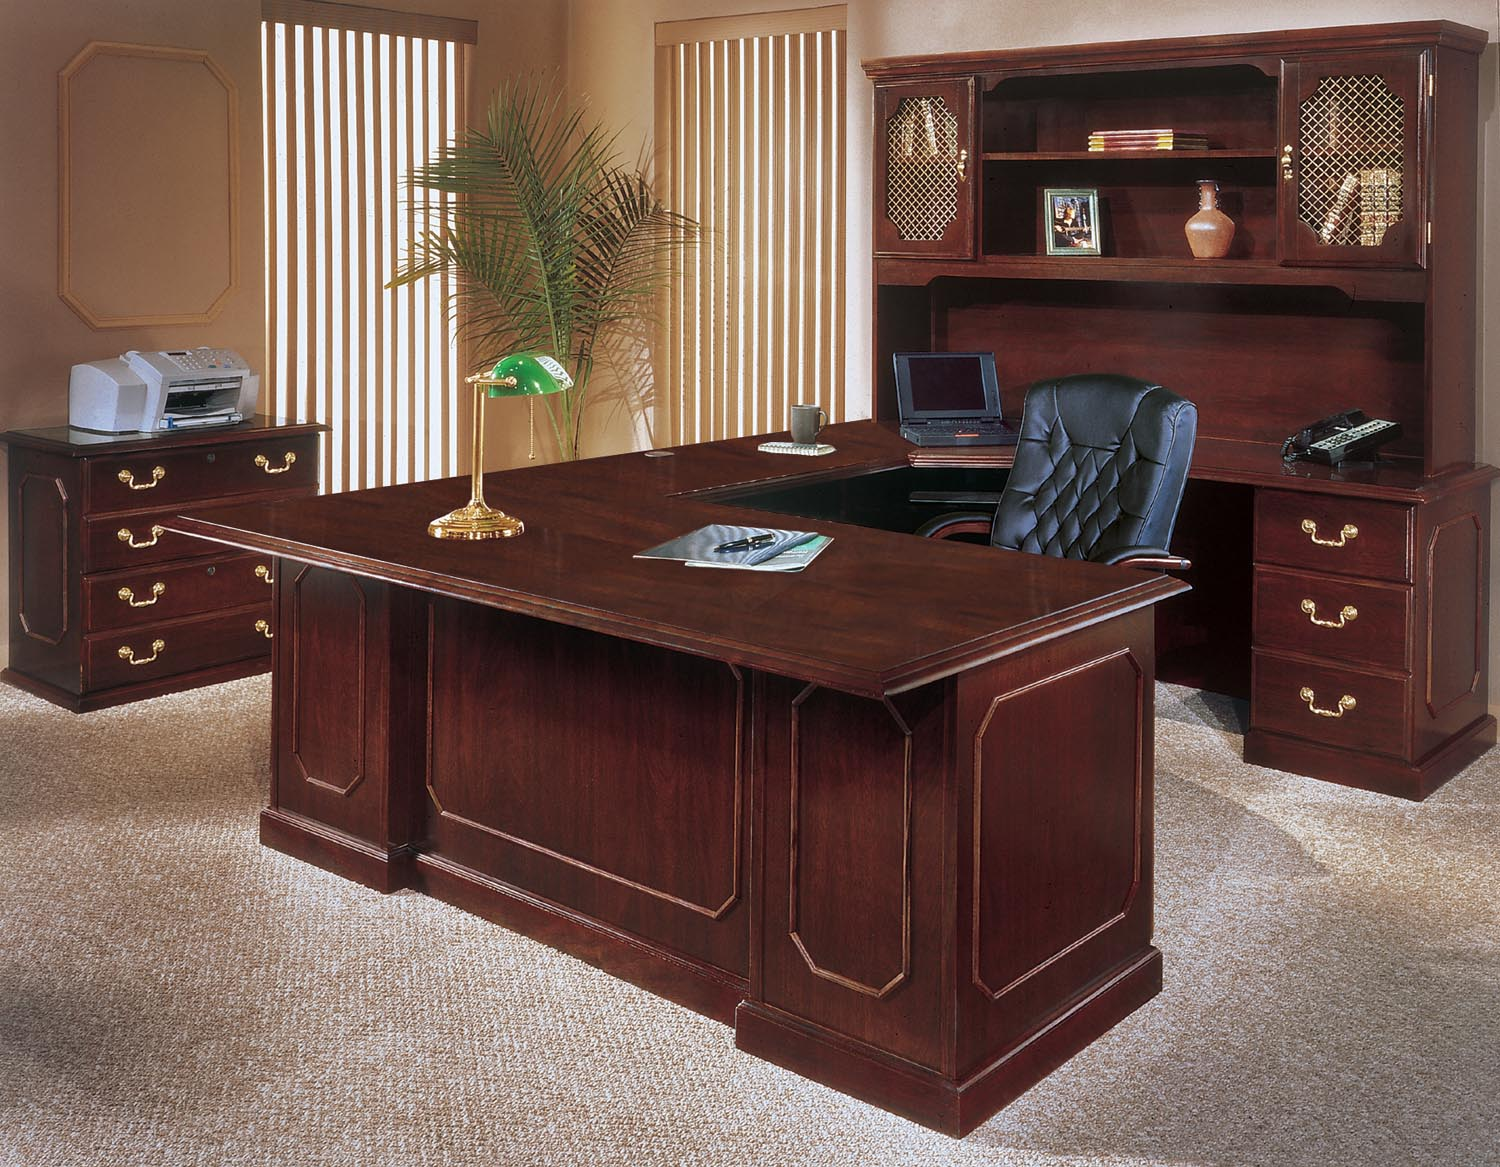 Incredible Modern Executive Office Desks Furniture 1500 x 1167 · 353 kB · jpeg